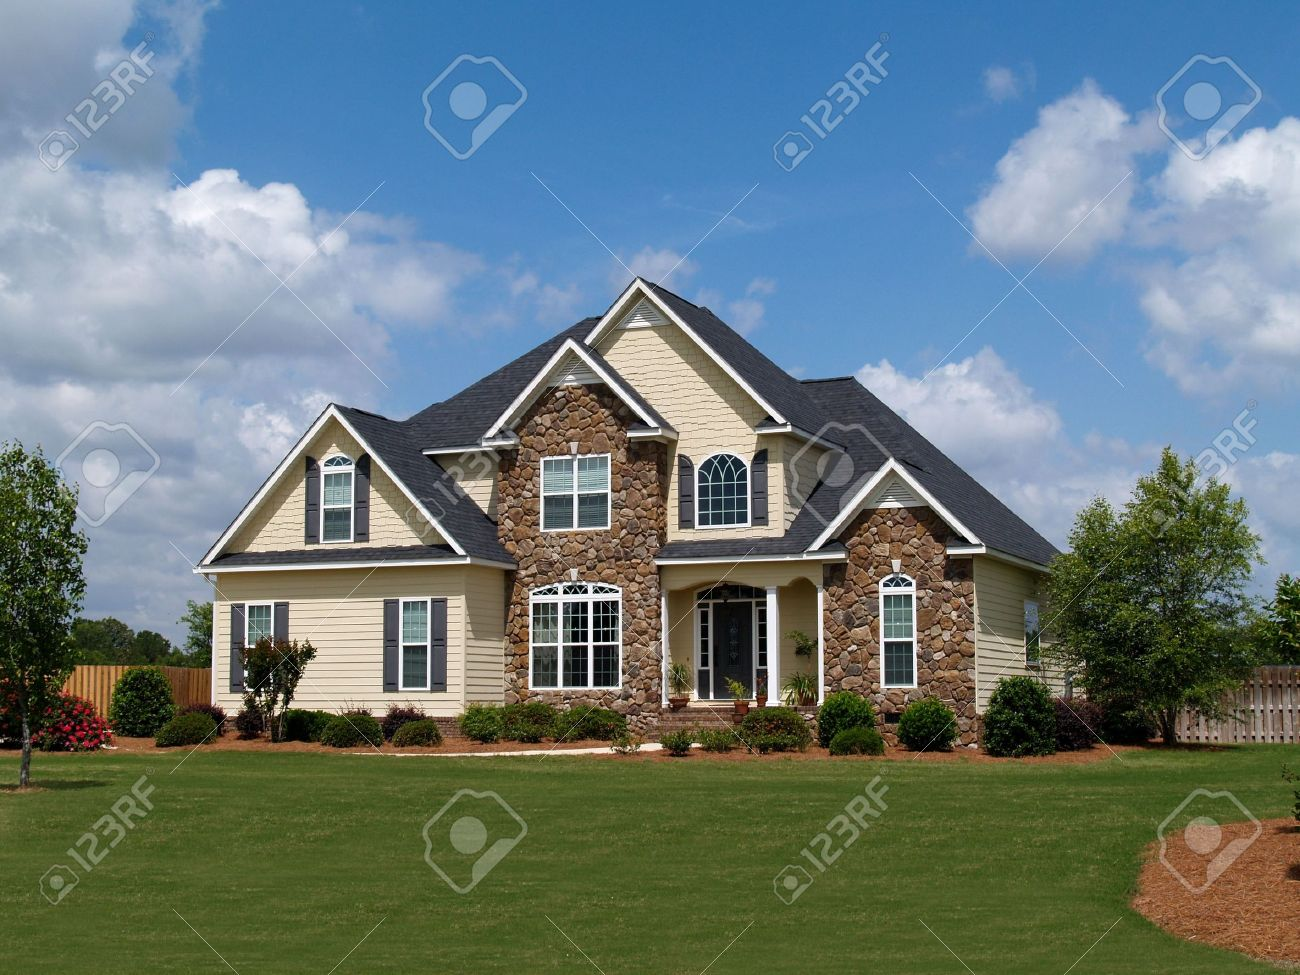 Two story residential home with both stone and board siding on the facade. Stock Photo - 5520067